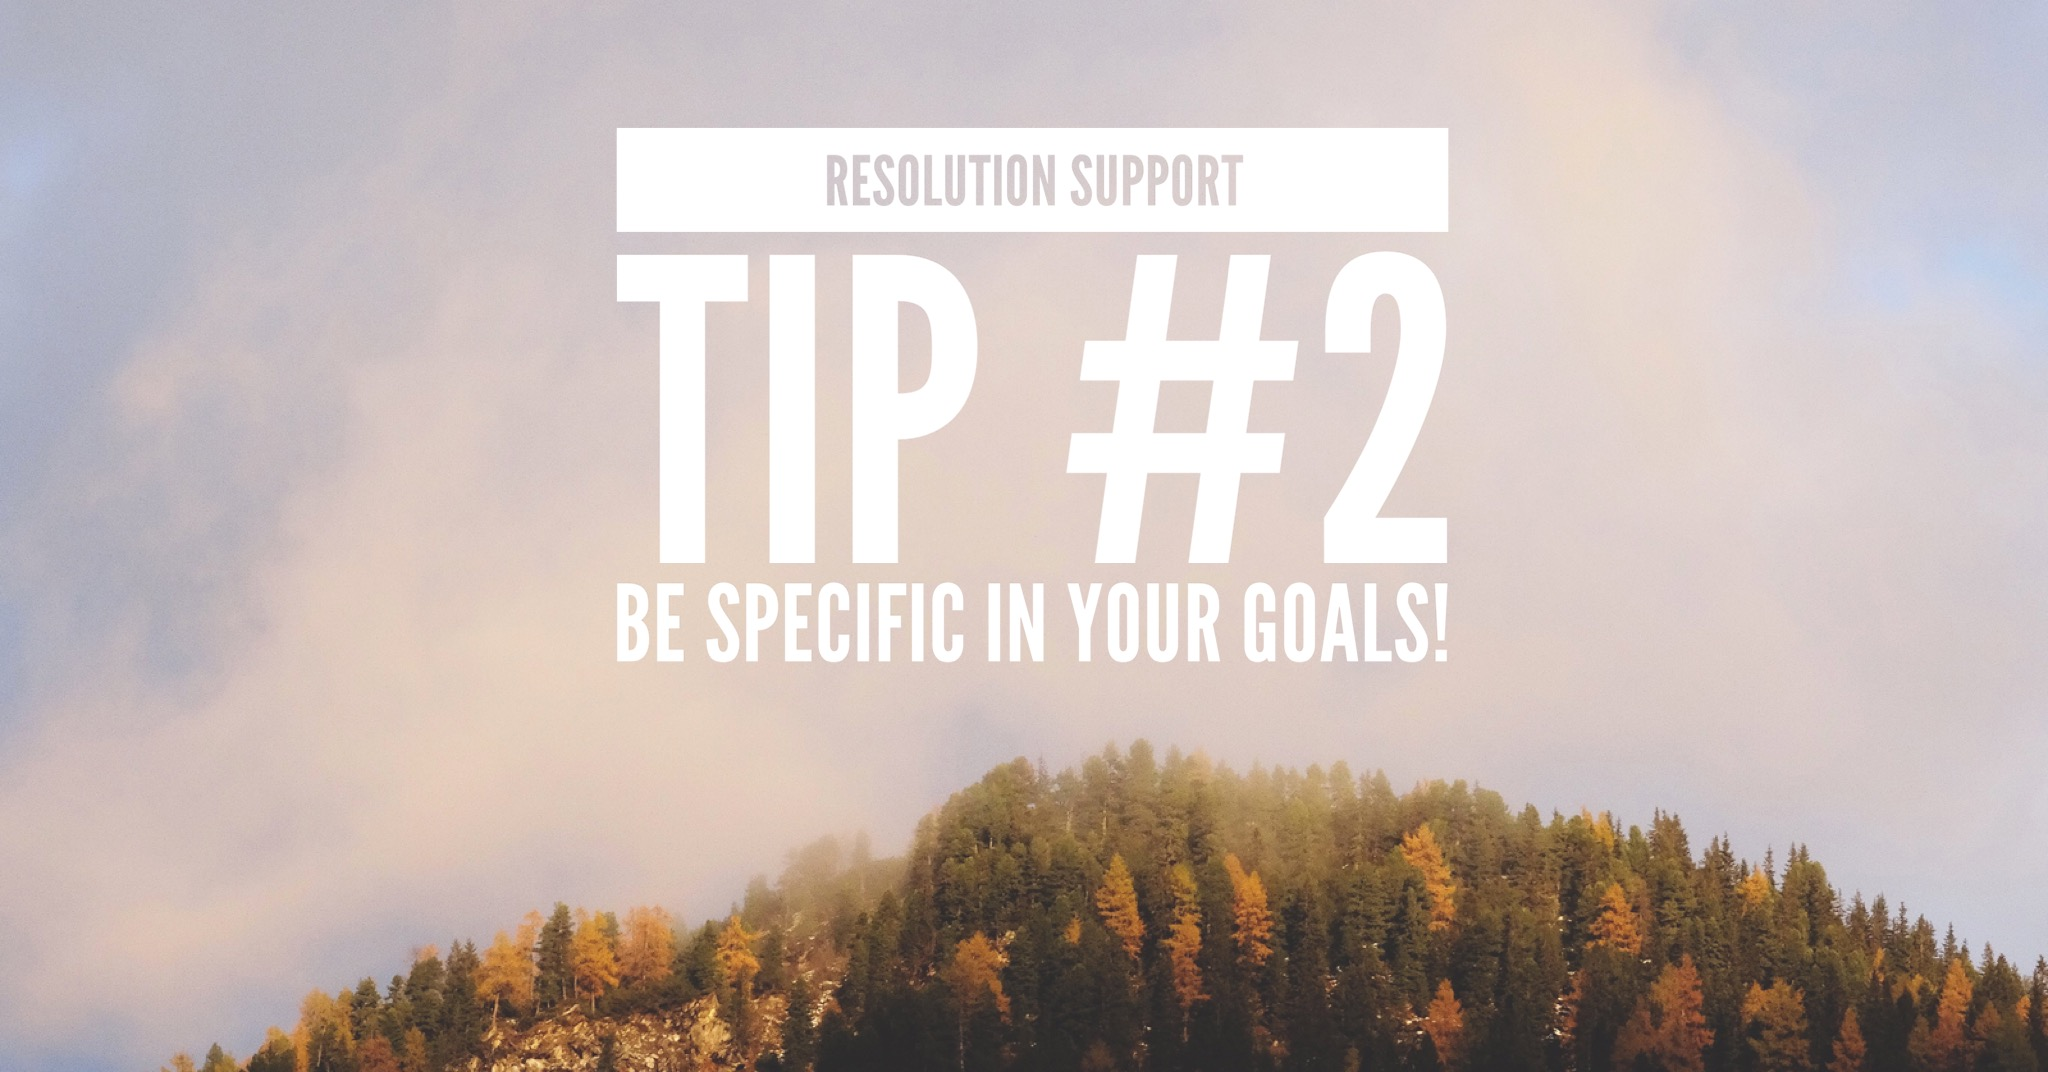 Resolution Support Tip #2: Be specific in your goals!